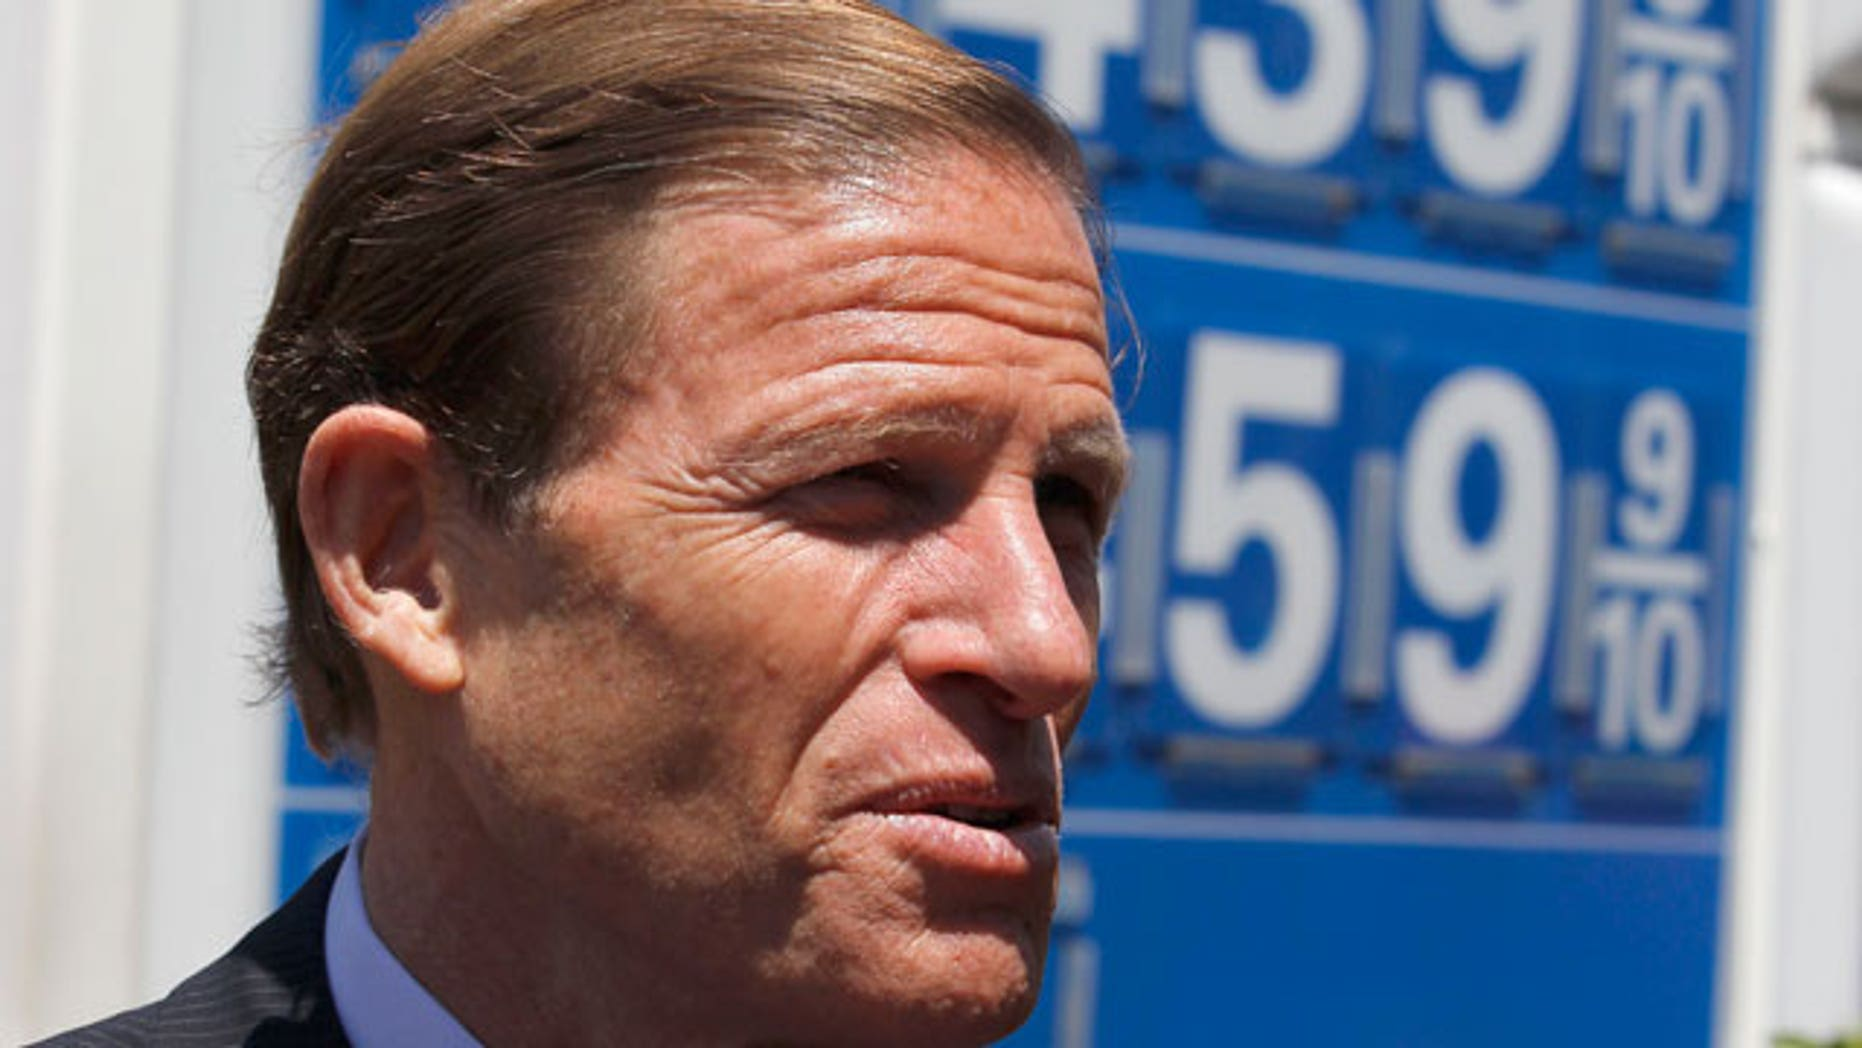 Sen. Richard Blumenthal, D-Conn. gestures during a news conference at a Exxon gas station on Capitol Hill in Washington, Wednesday, May 11, 2011. (AP)